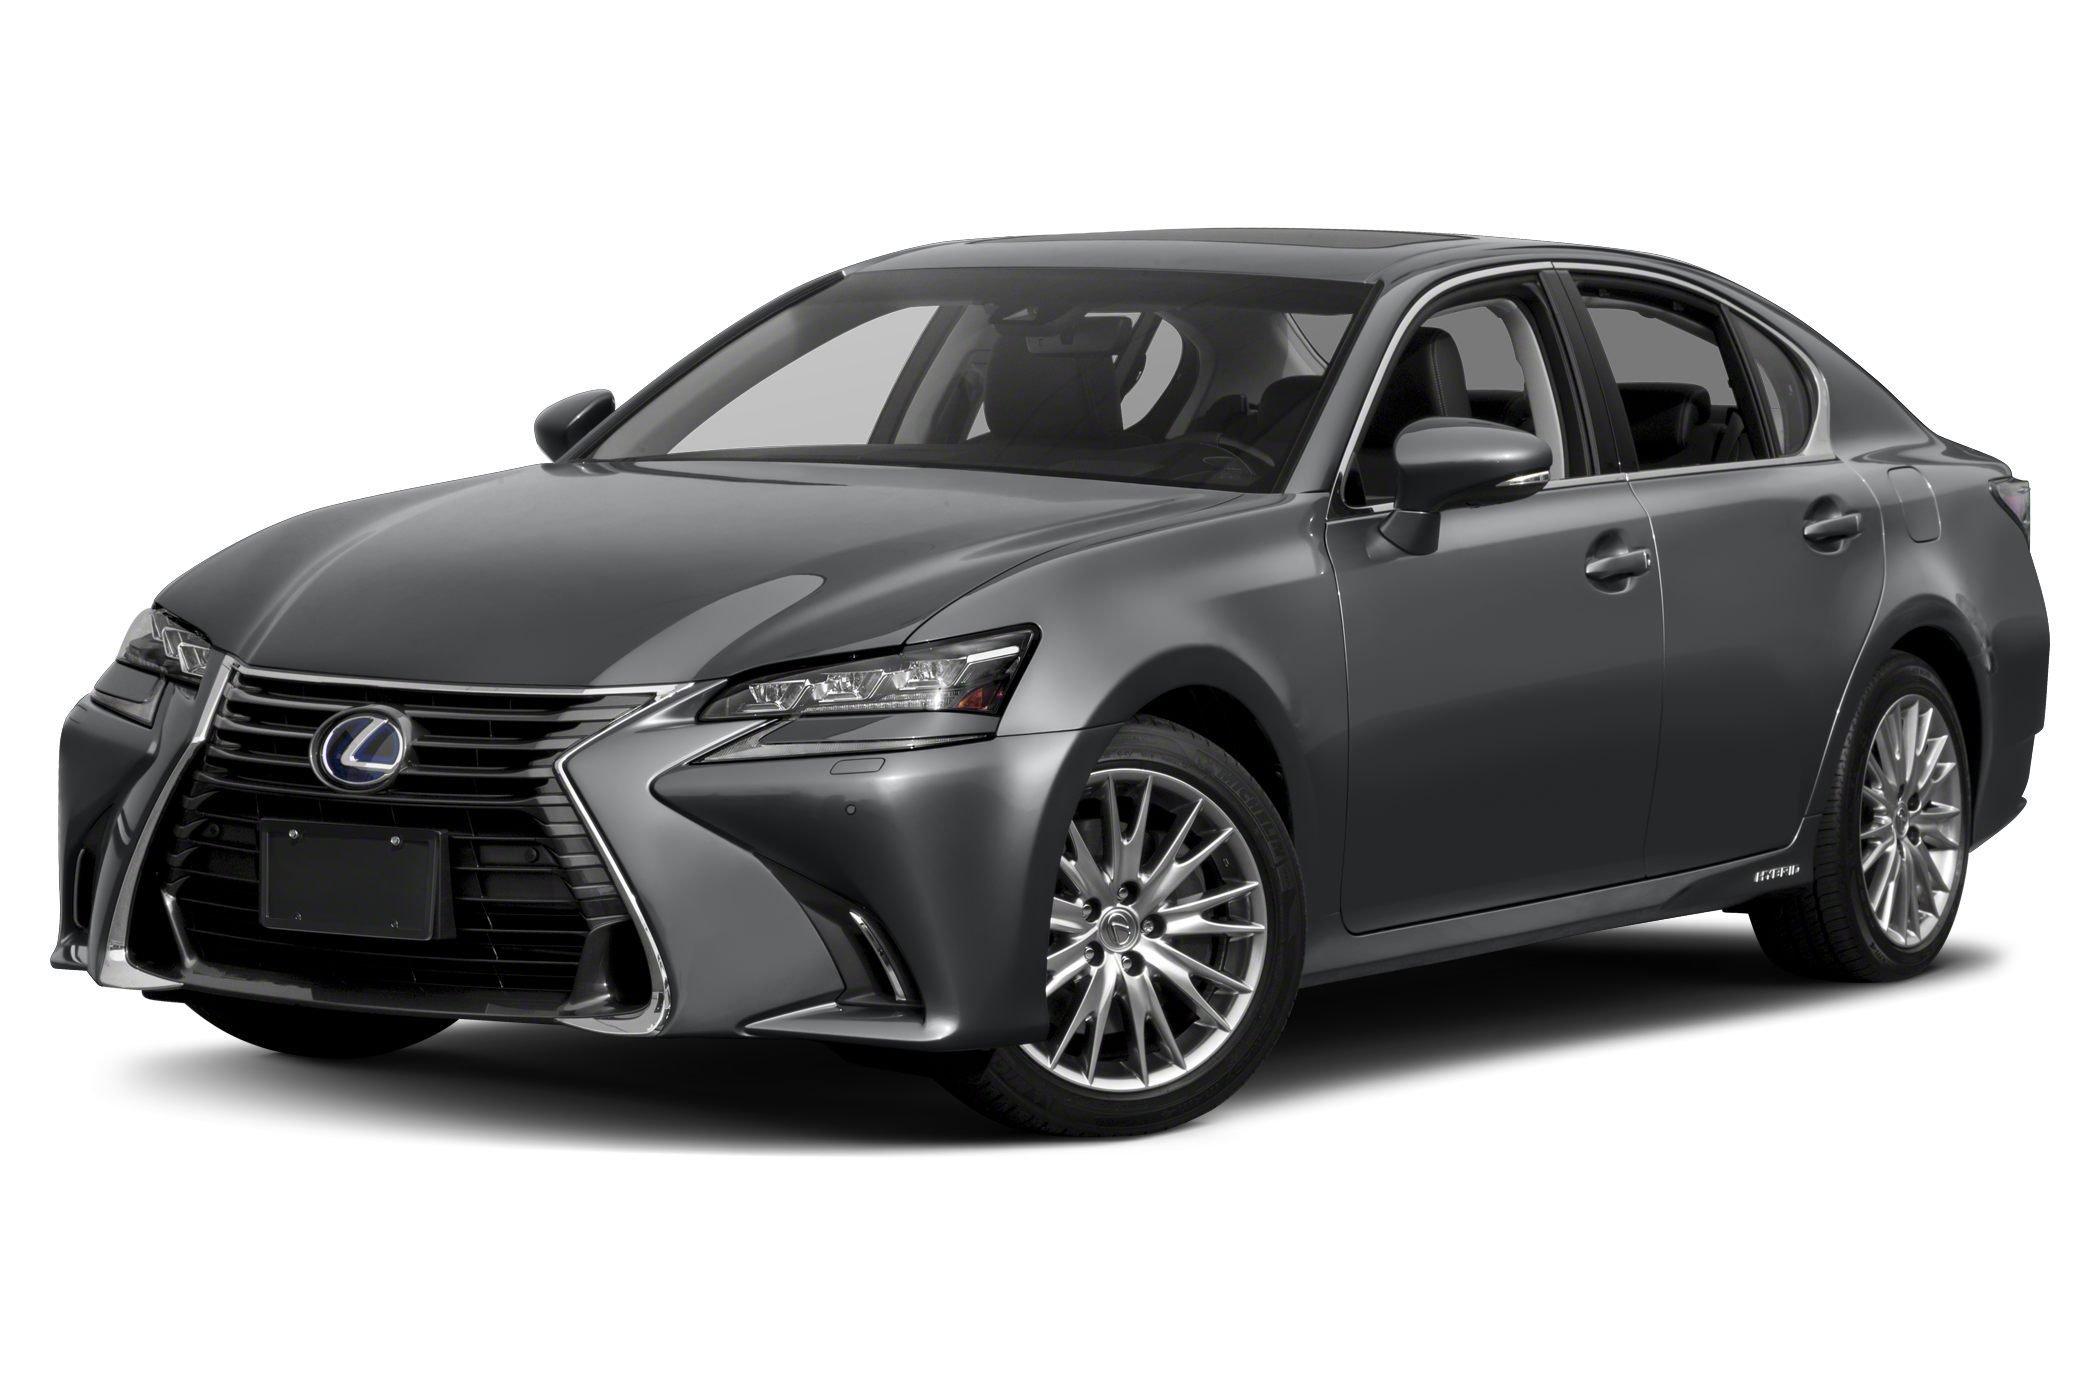 Latest 2016 Lexus Gs 450H Price Photos Reviews Features Free Download